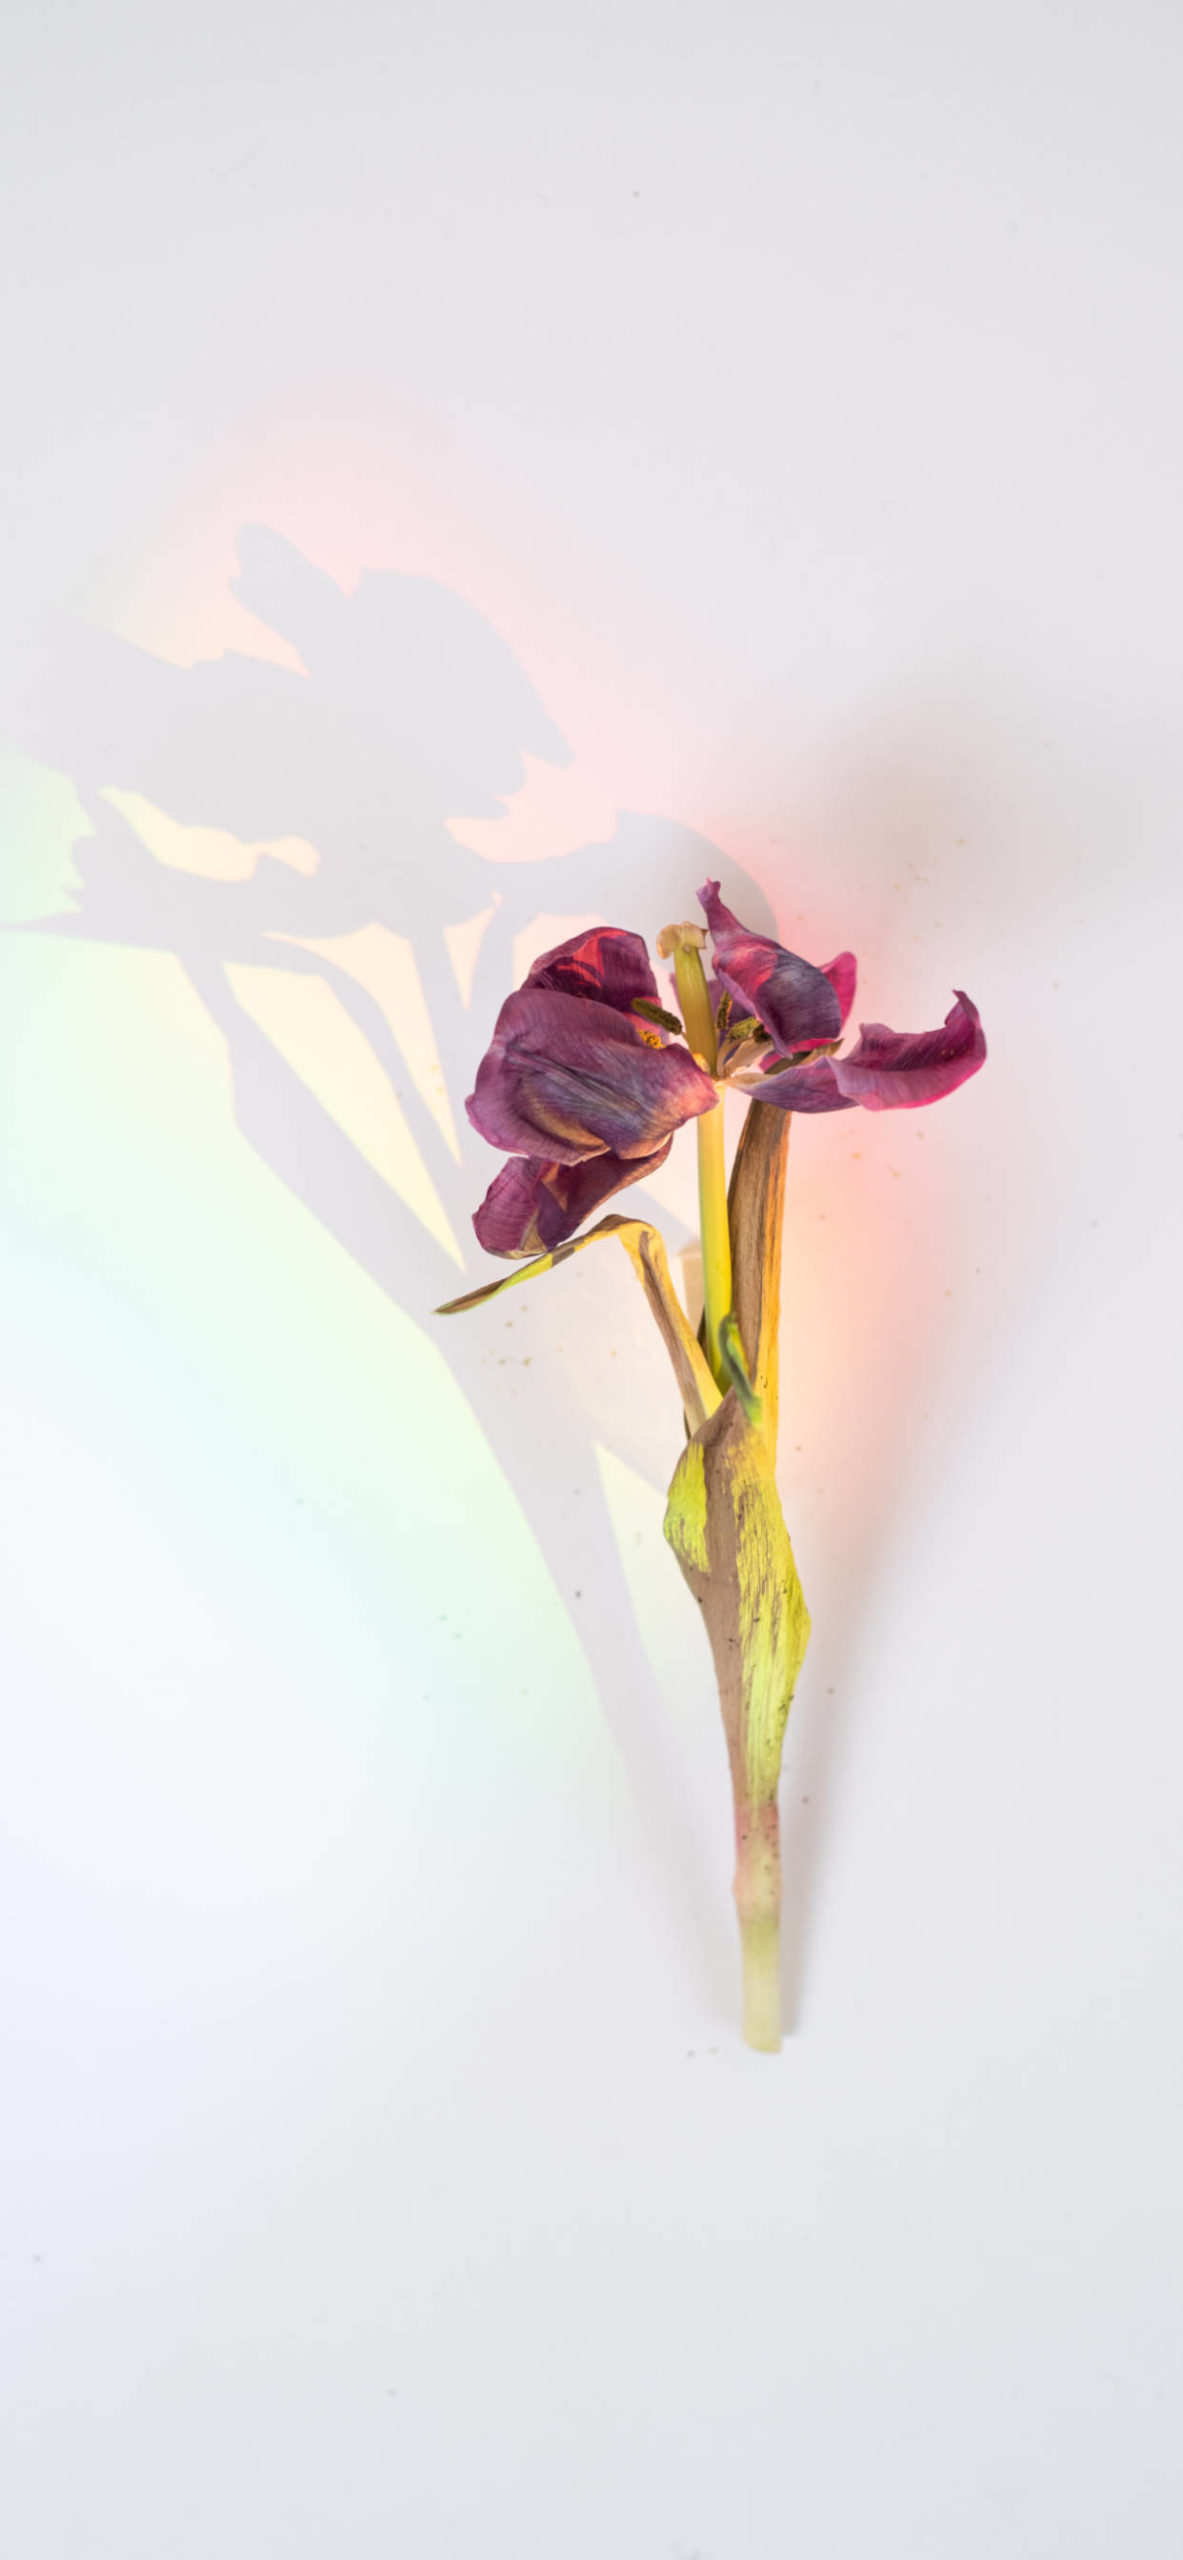 iPhone wallpapers flowers shadow scaled Flowers